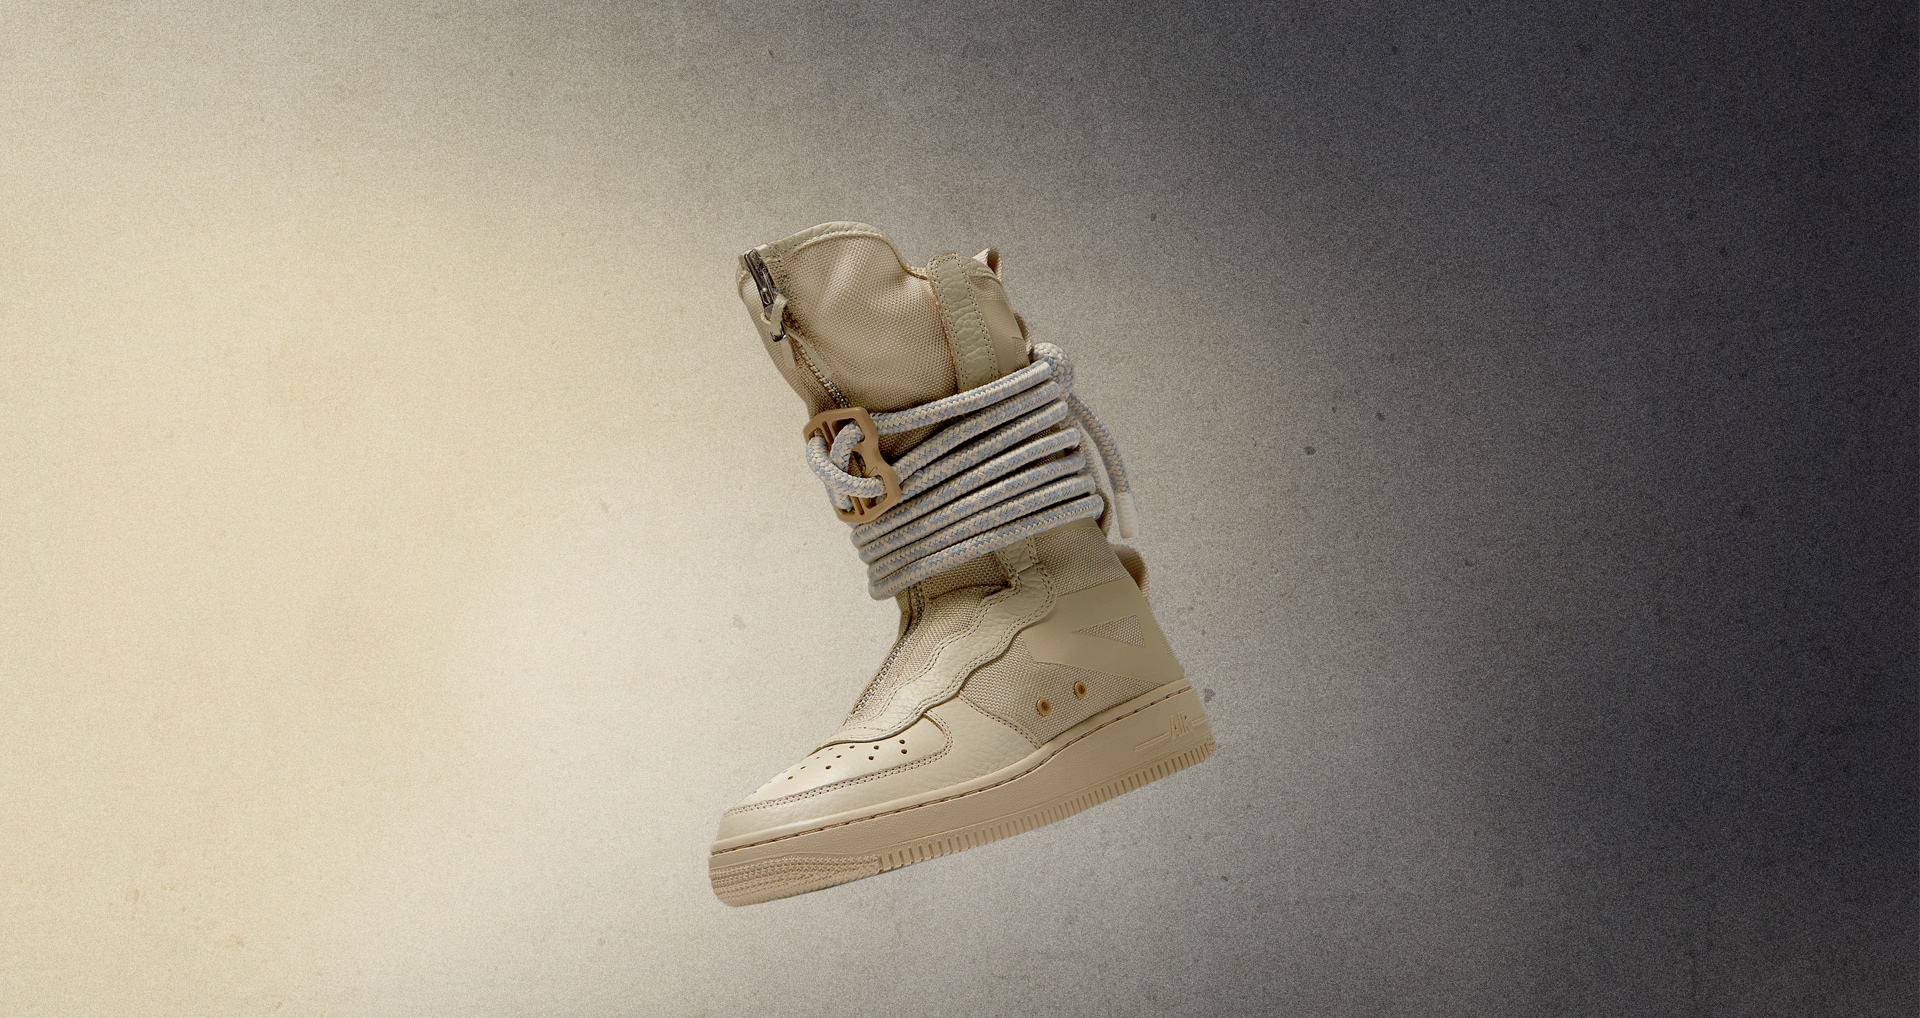 nike-wmns-sf-af1-special-field-air-force-1-high-rattan-aa3965-200-1